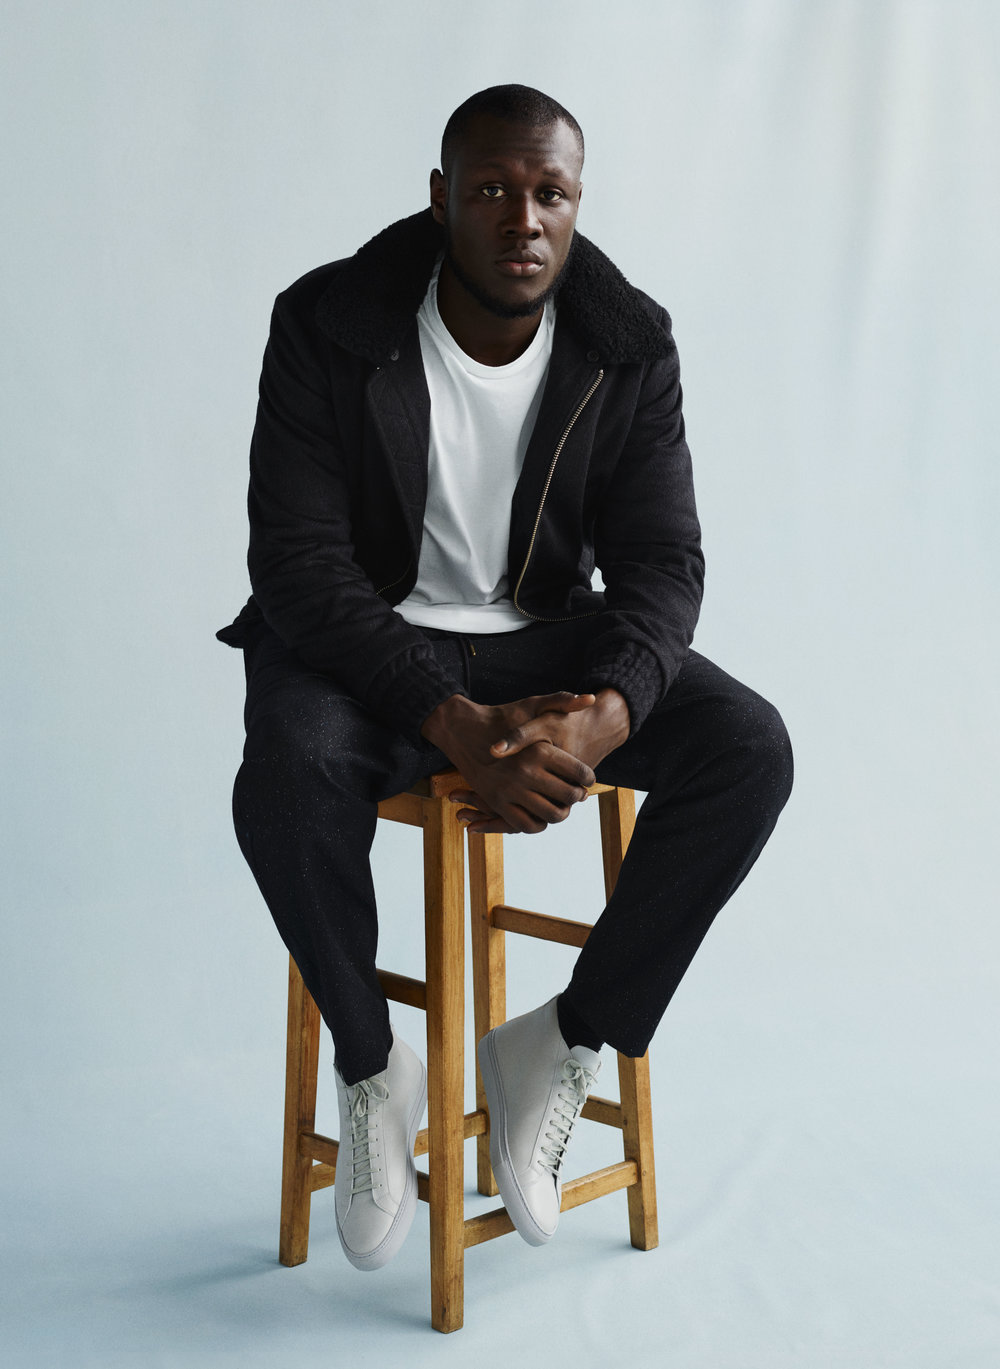 STORMZY HEADLINES FRIDAY AT TRNSMT FESTIVAL 2019!